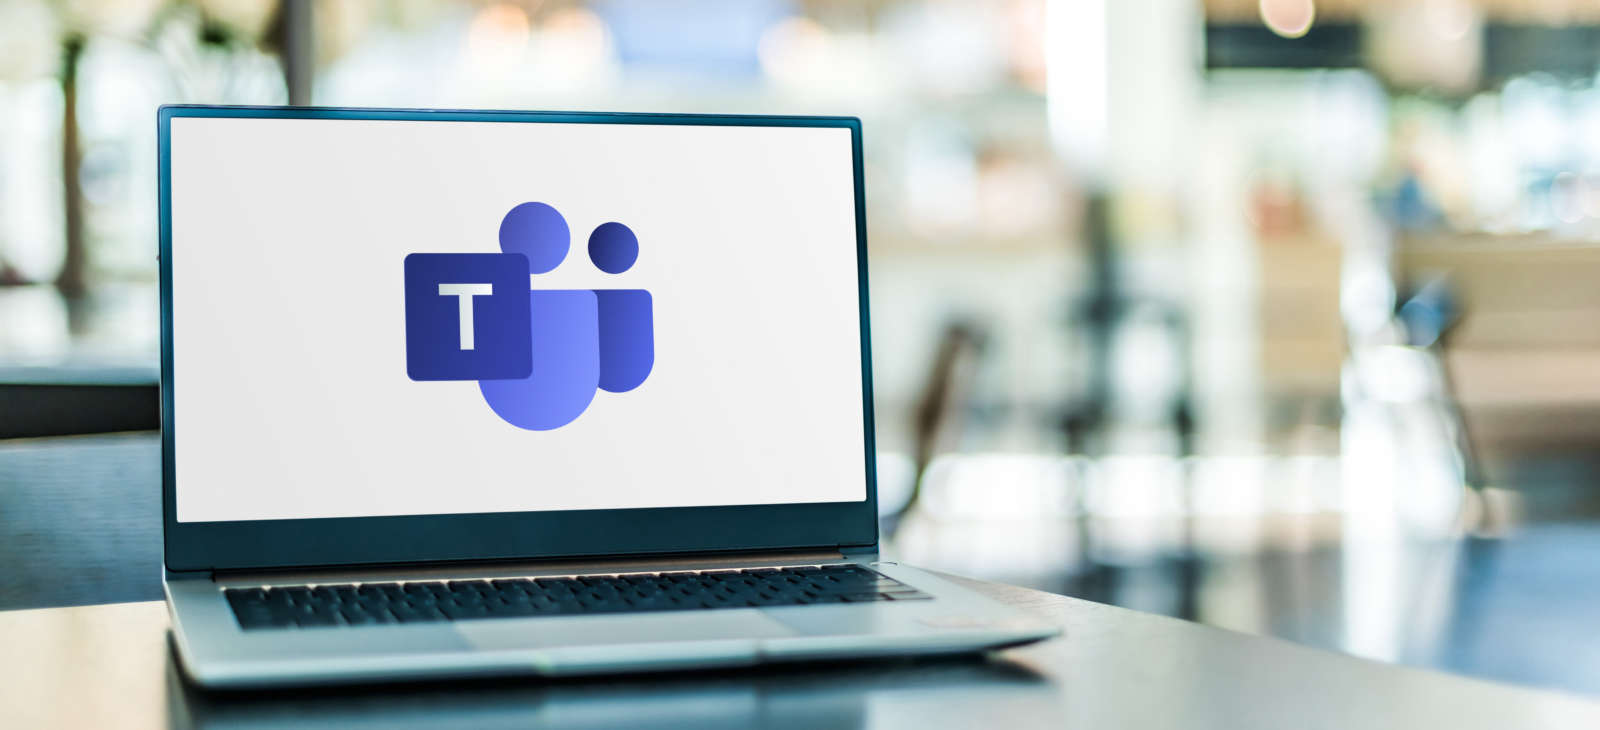 Microsoft Teams Live Events vs. Teams for Webinar vs. Teams Meetings with Overflow: Which is Best for Internal Comms?